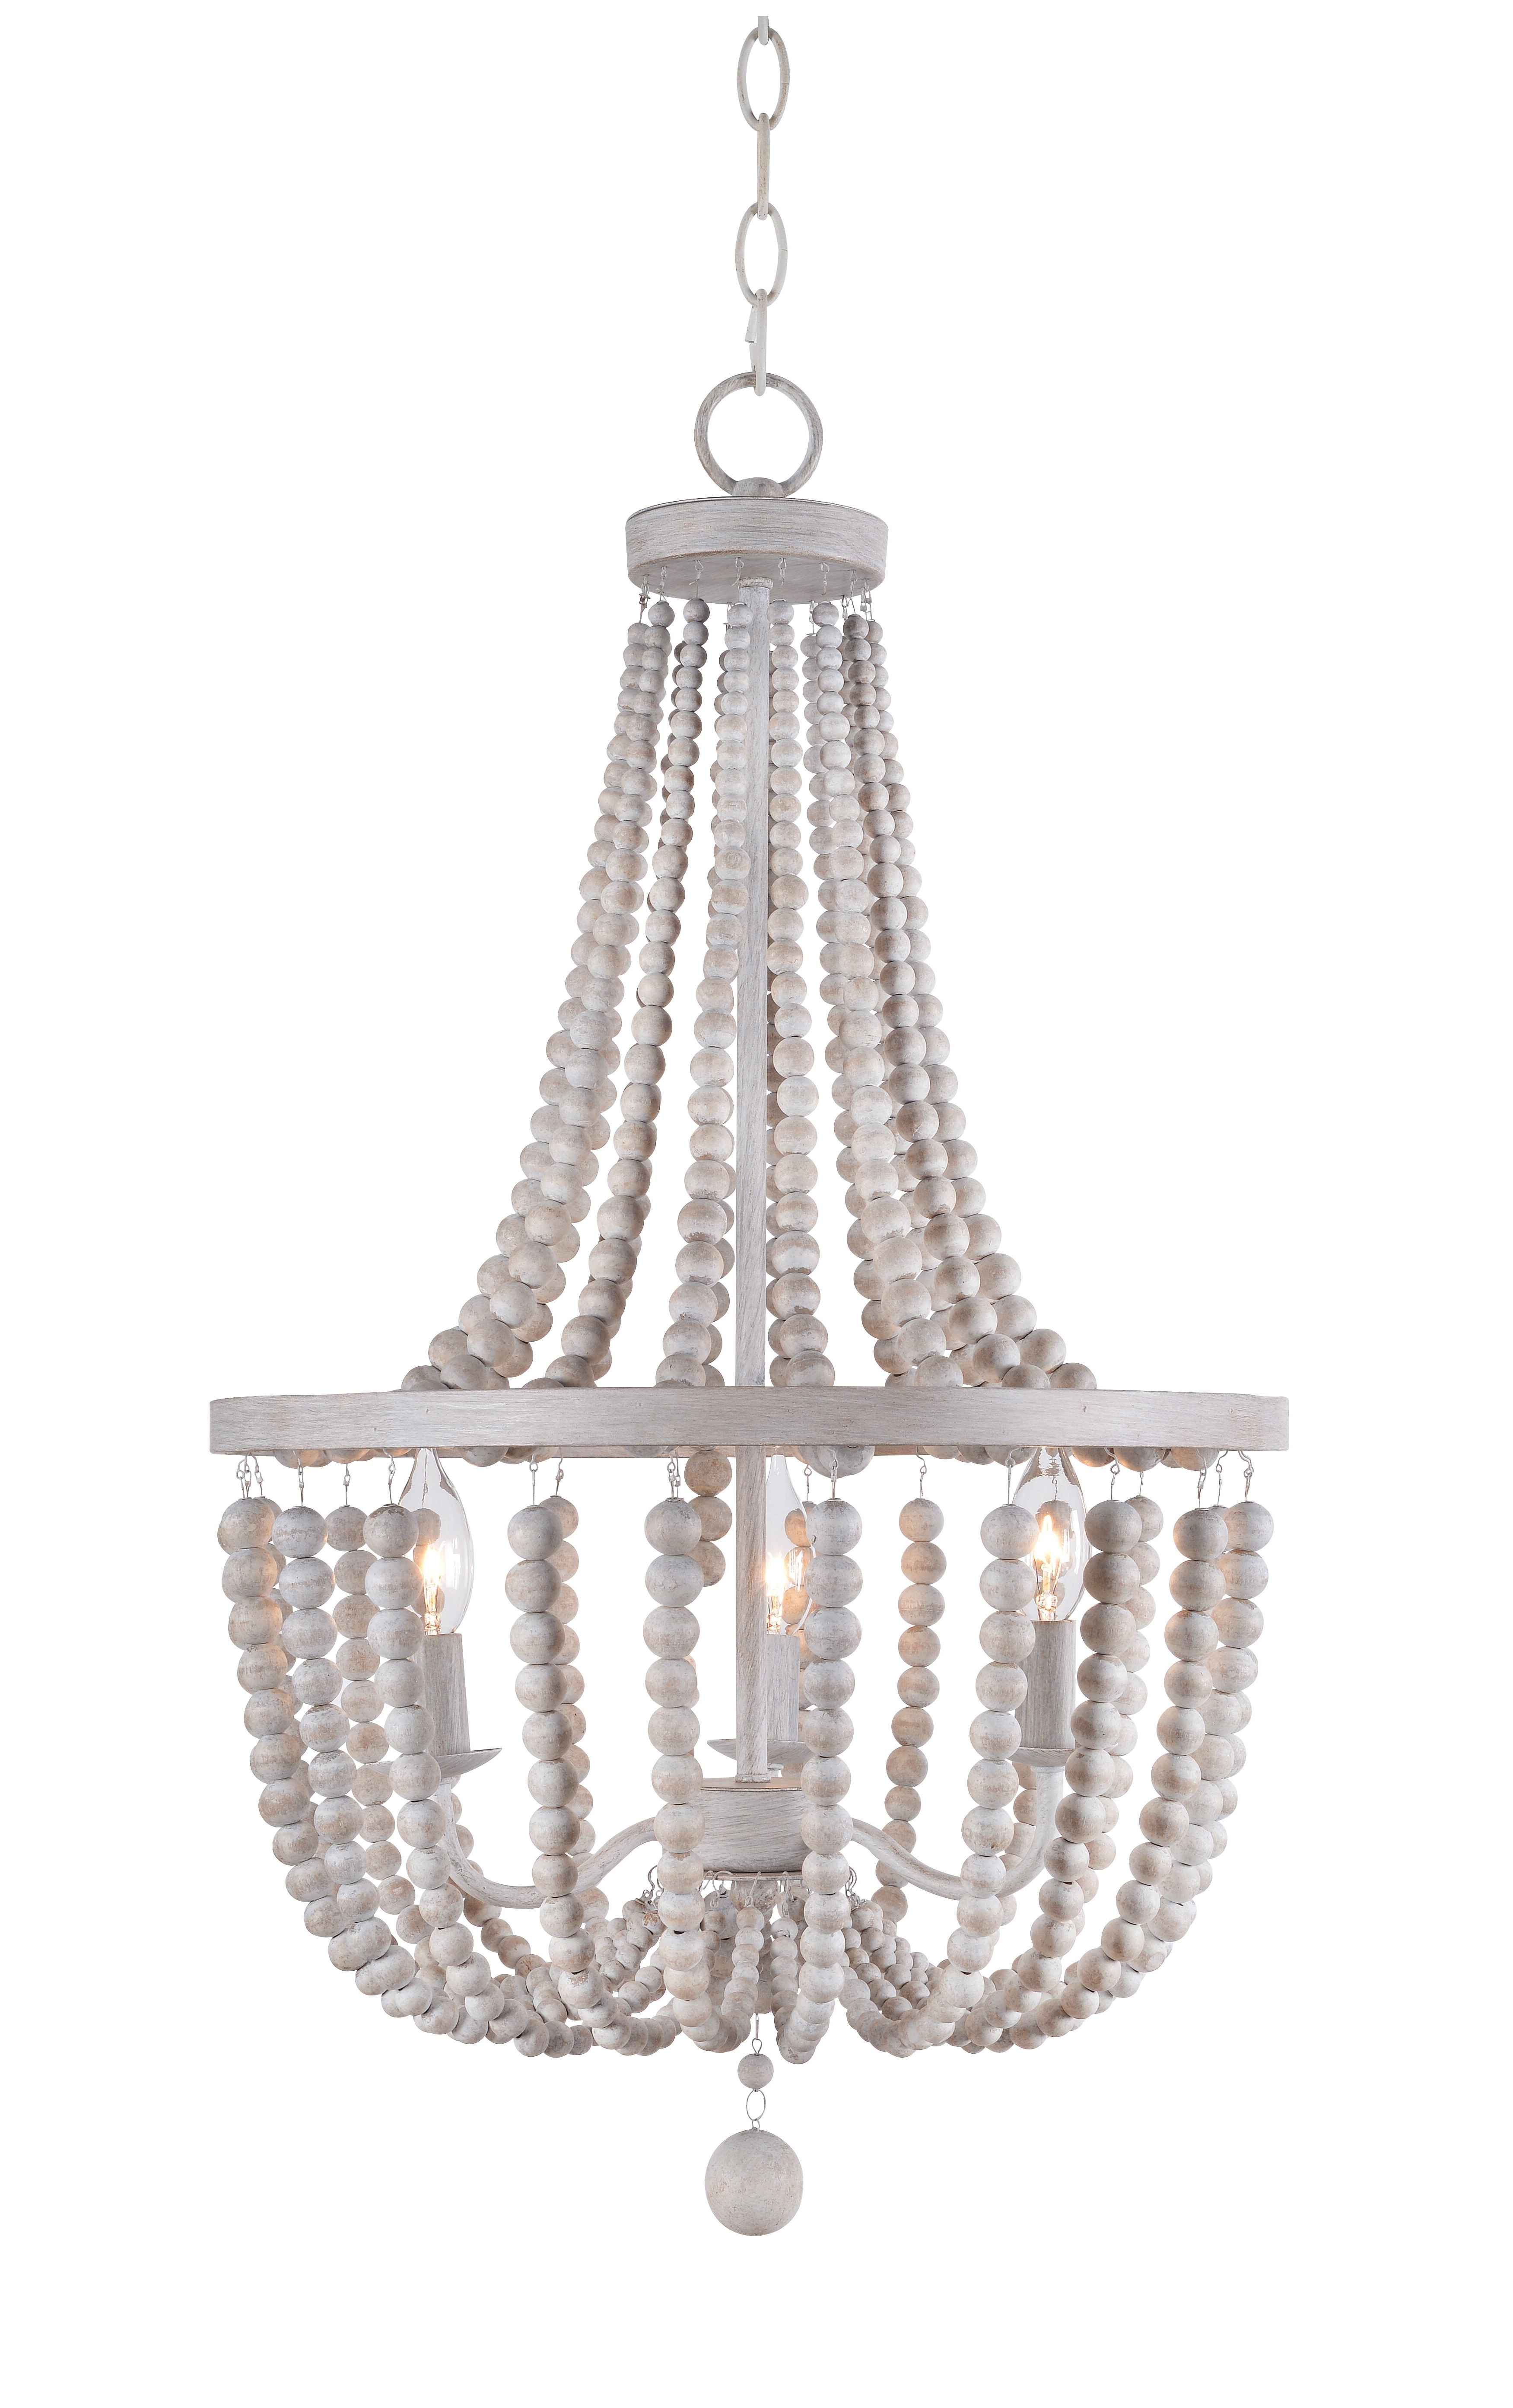 2020 Home Office Chandelier You'll Love In  (View 1 of 25)